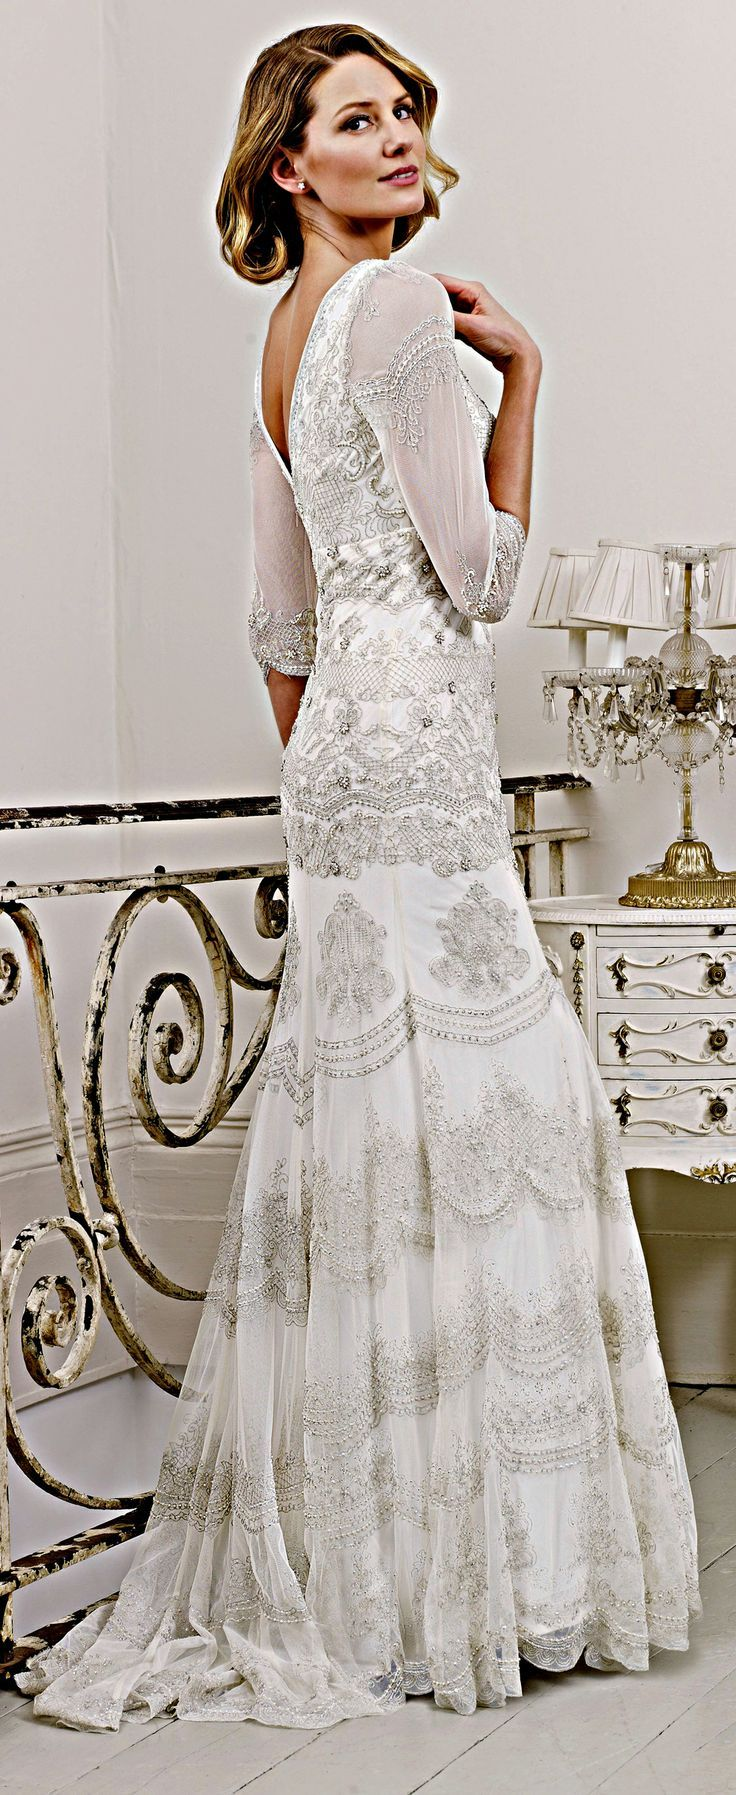 wedding dresses for senior brides | Best Wedding Dresses For Older ...